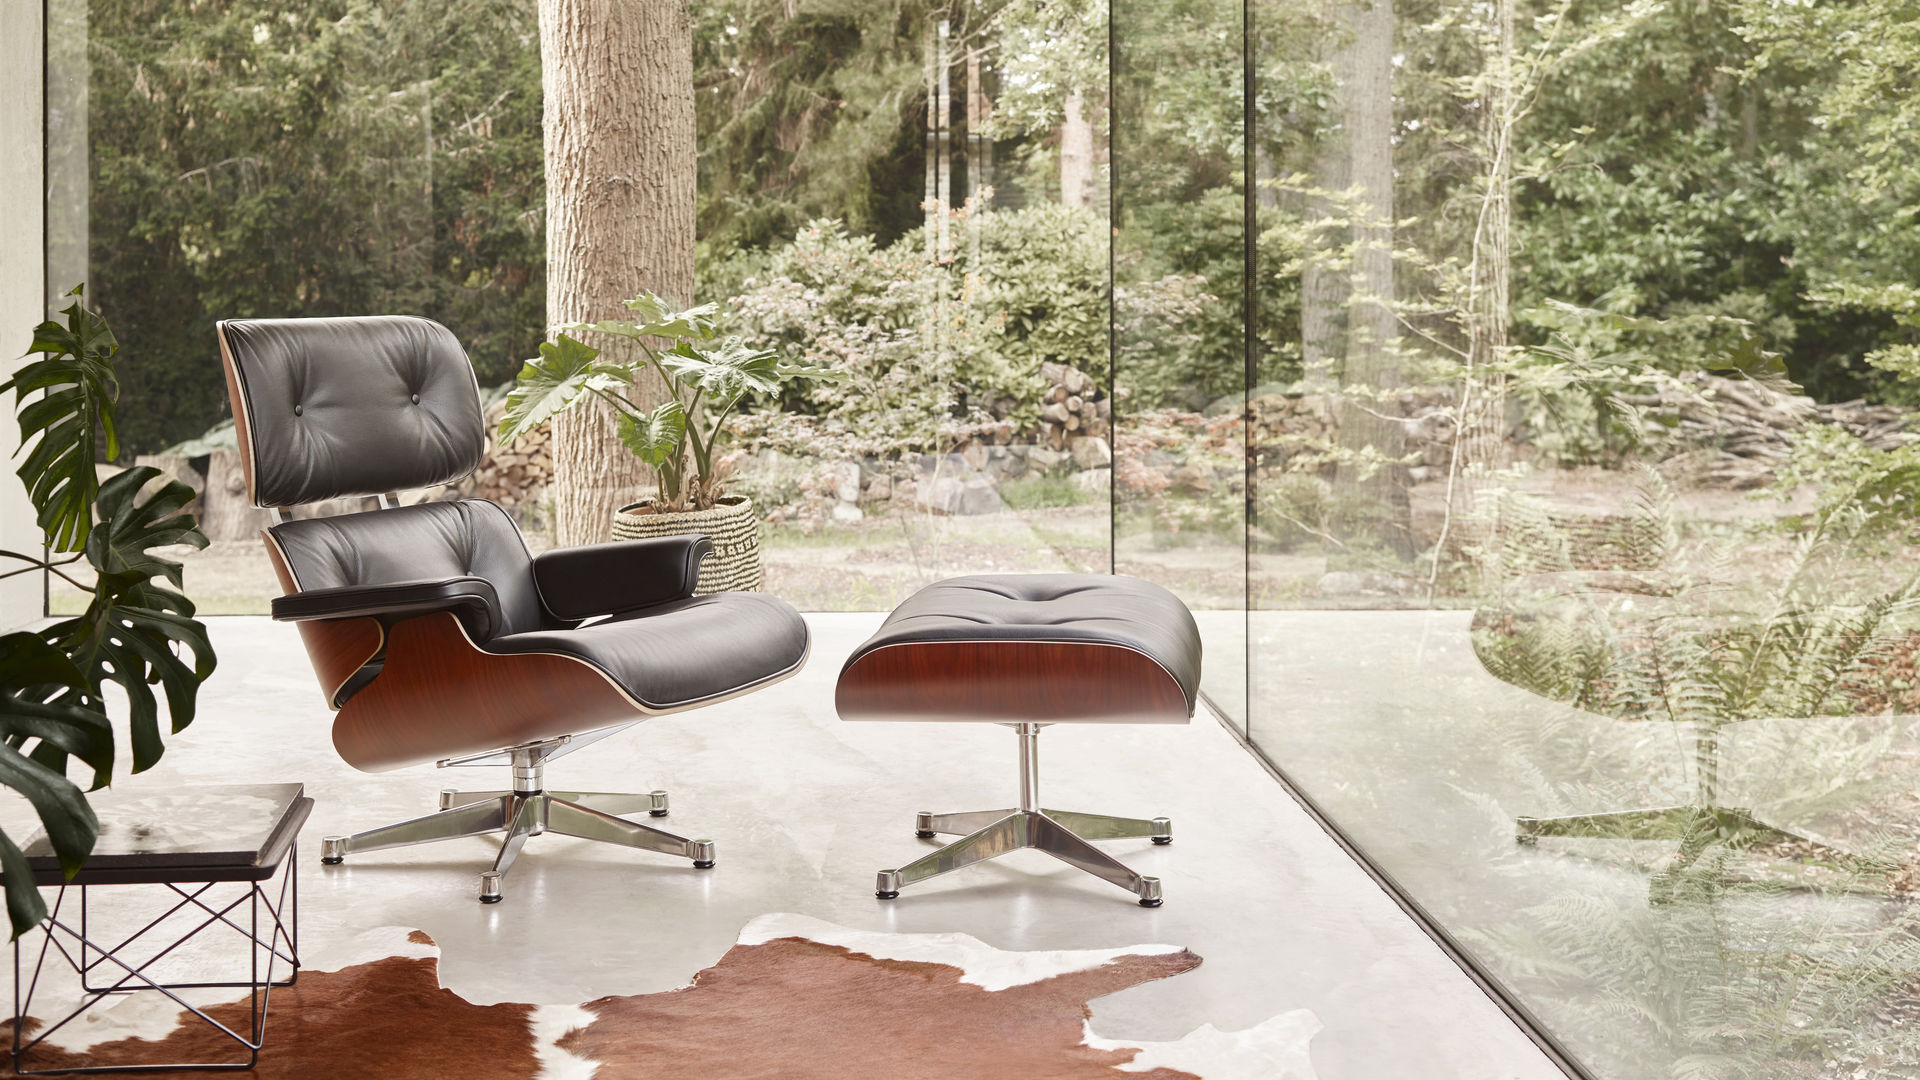 Eames Lounge Chair & Ottoman Occasional Table LTR_web_16-9